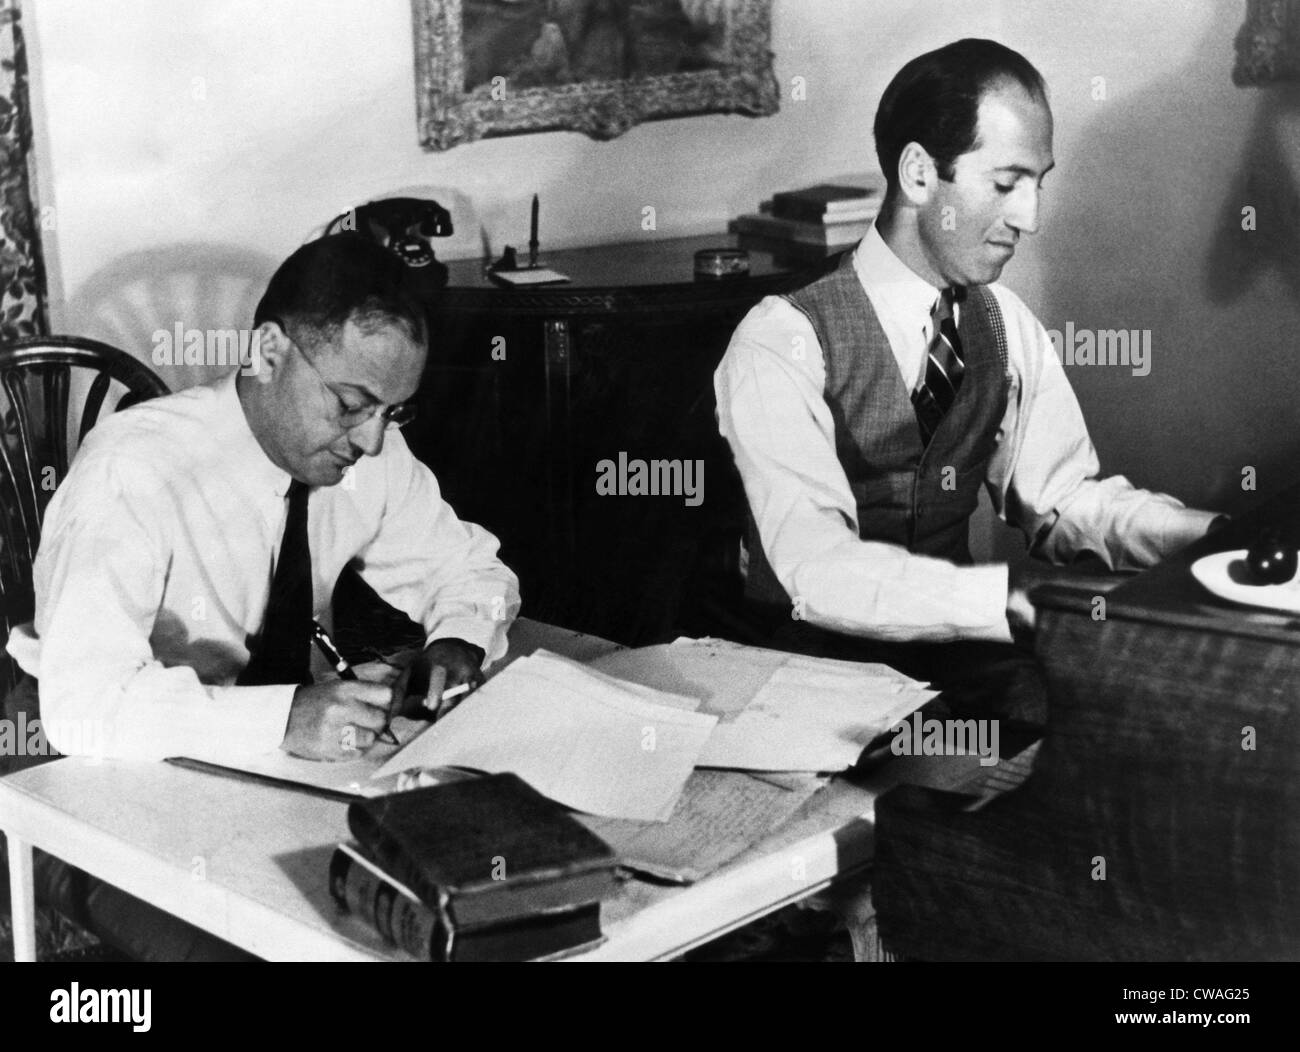 Ira and George Gershwin at work on a film score. ca. early 1930s. Courtesy: CSU Archives/Everett Collection. - Stock Image